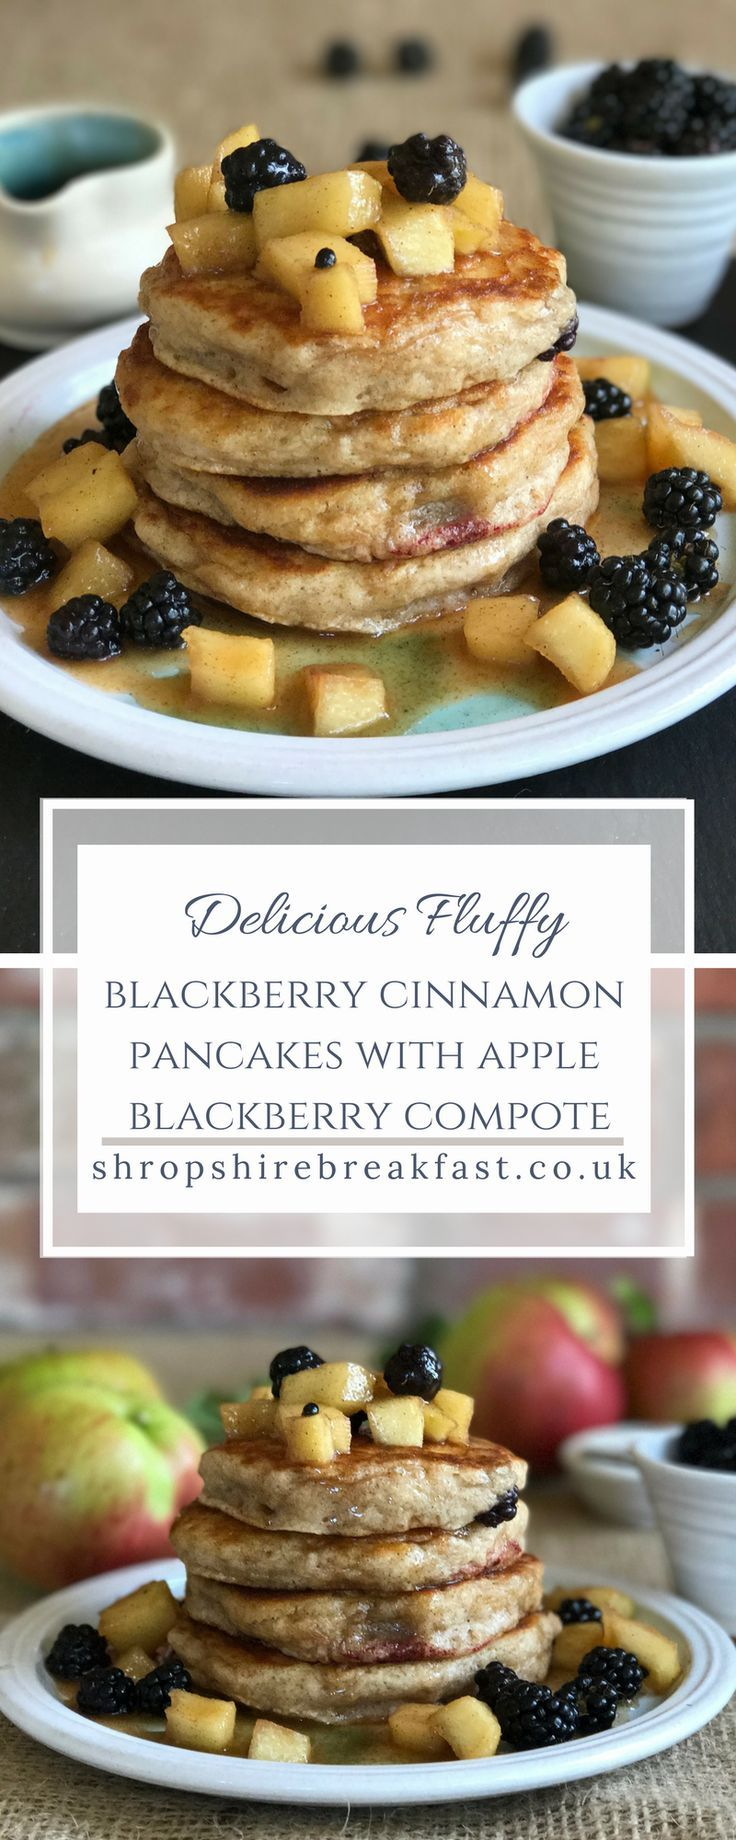 Delicious, fluffy blackberry pancakes with an apple blackberry compote | a perfect autumn recipe for using up a glut of apples and blackberries #apples #autumn # recipes